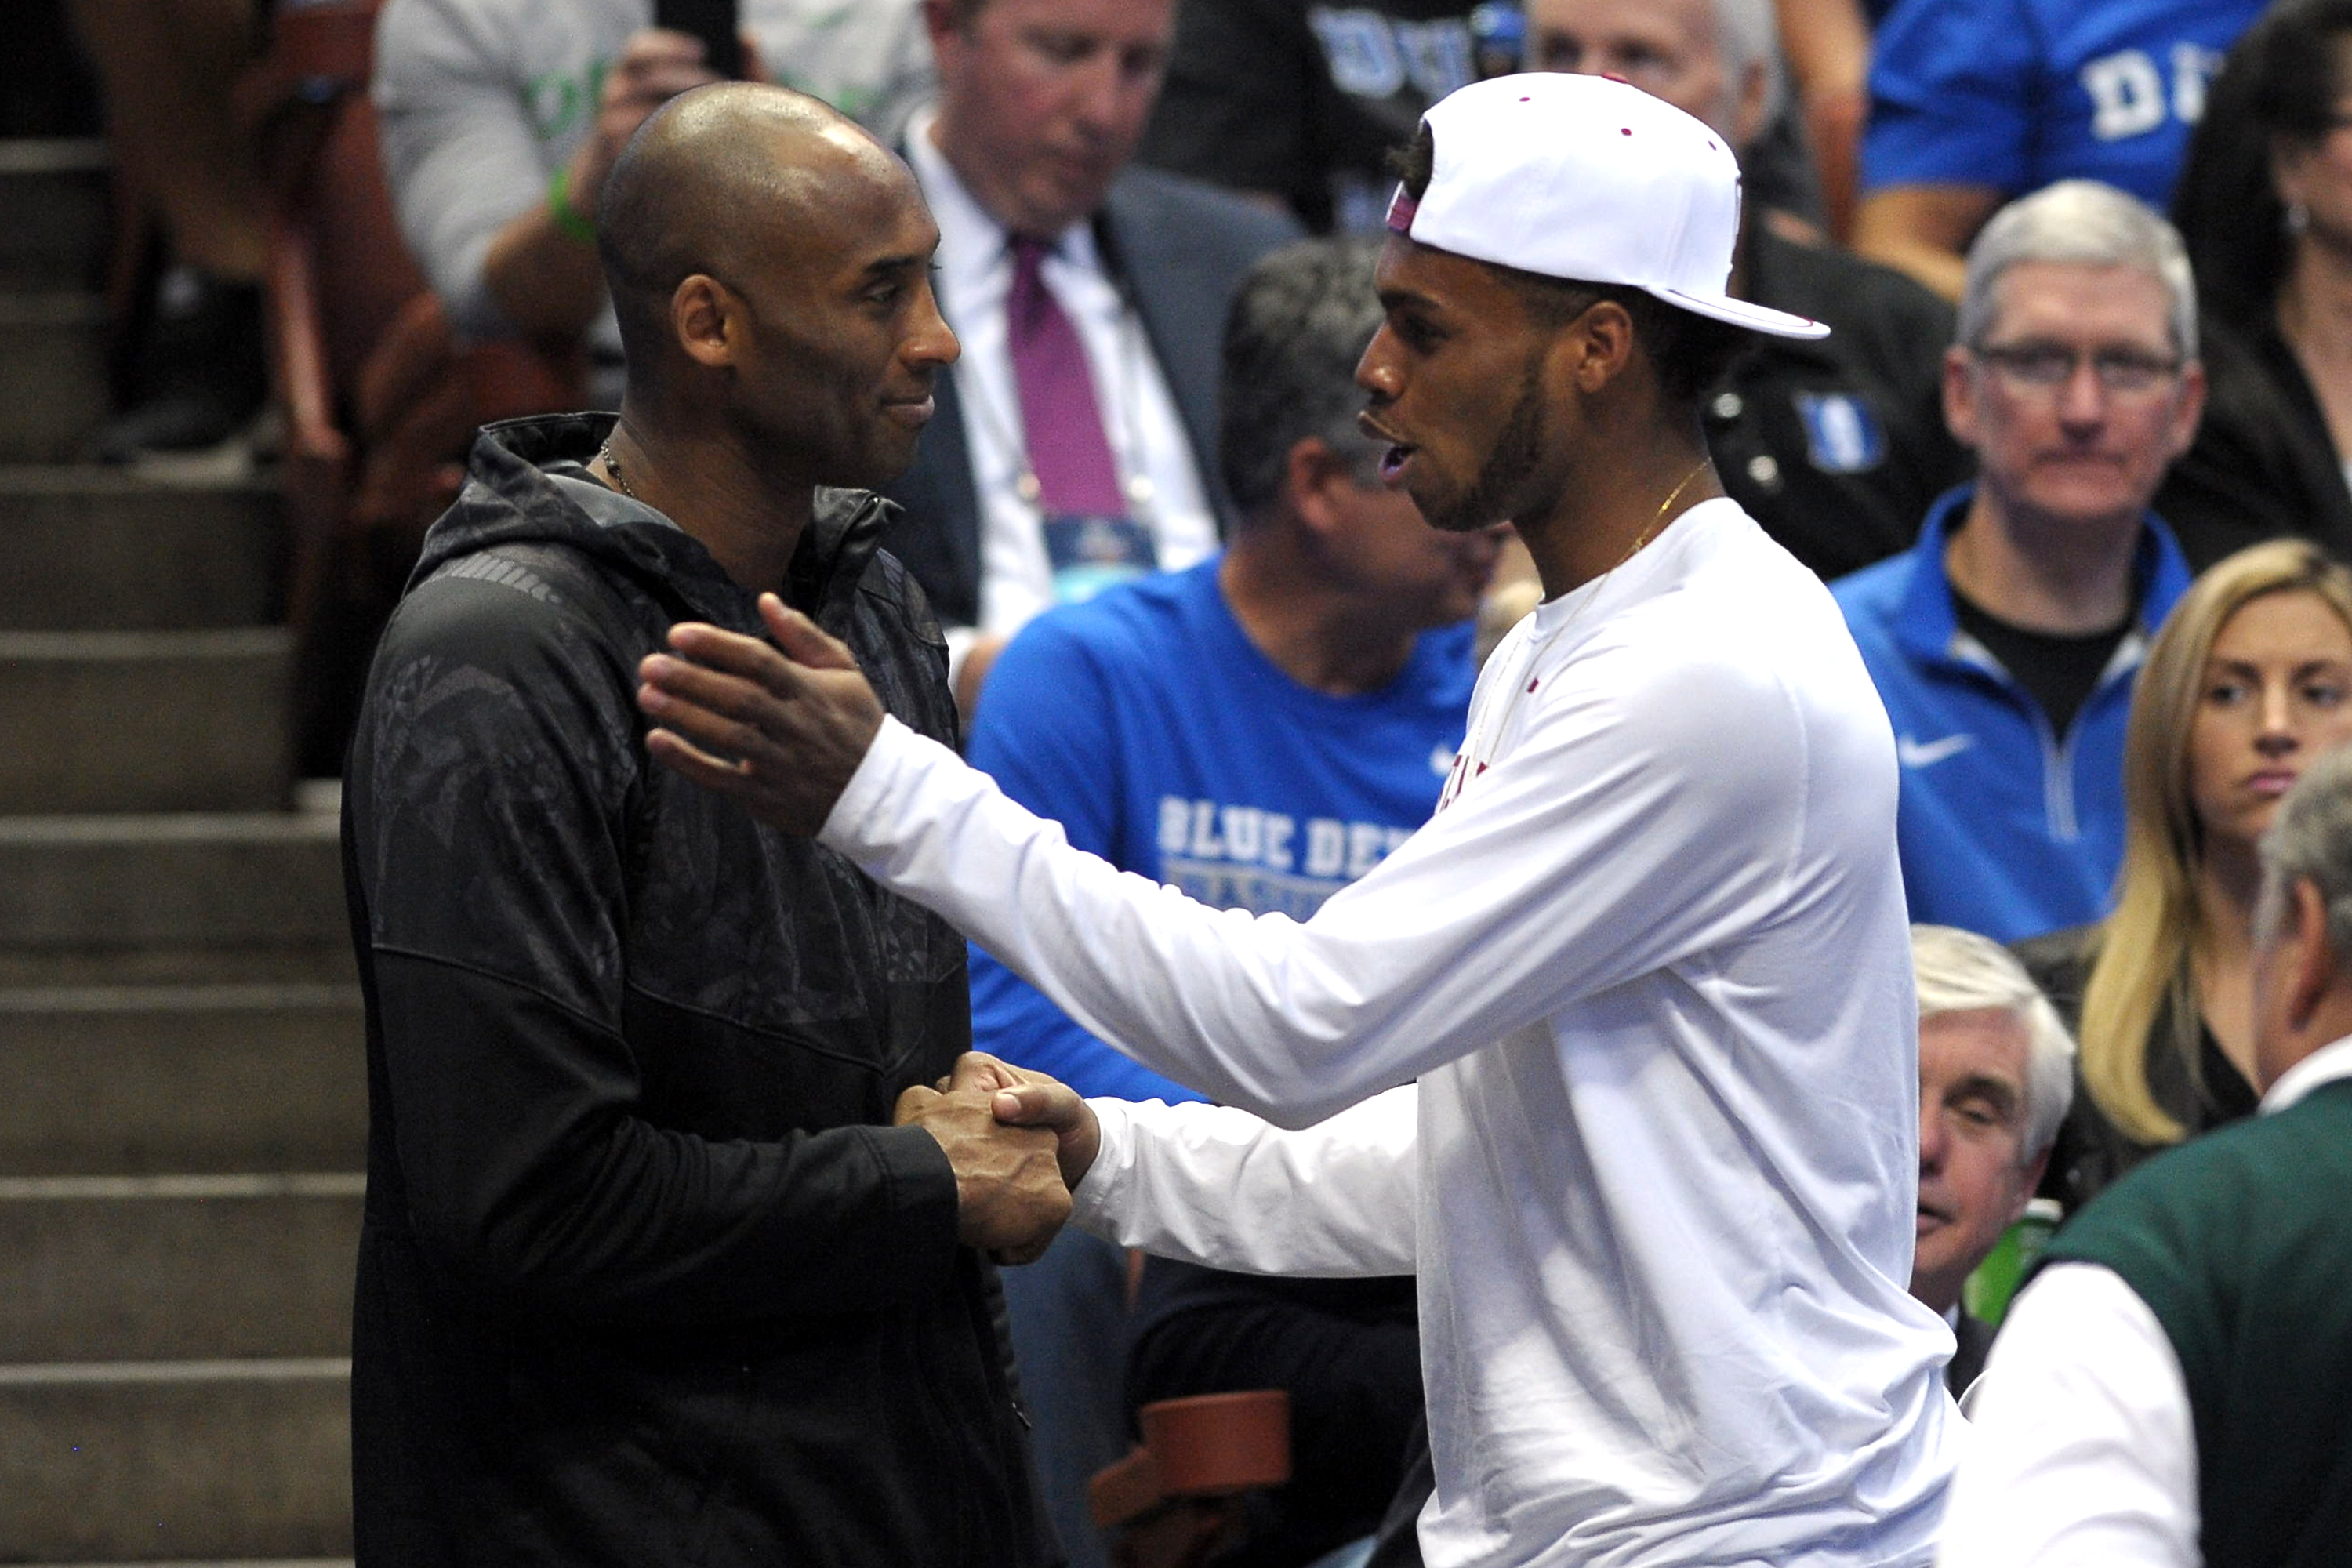 Kobe Bryant of the Los Angeles Lakers (L) talks with Buddy Hield of the Oklahoma Sooners during the game between the Duke Blue Devils and the Oregon Ducks during the West Regional Semifinal of the 2016 NCAA Men's Basketball Tournament at Honda Center on March 24, 2016 in Anaheim, California.